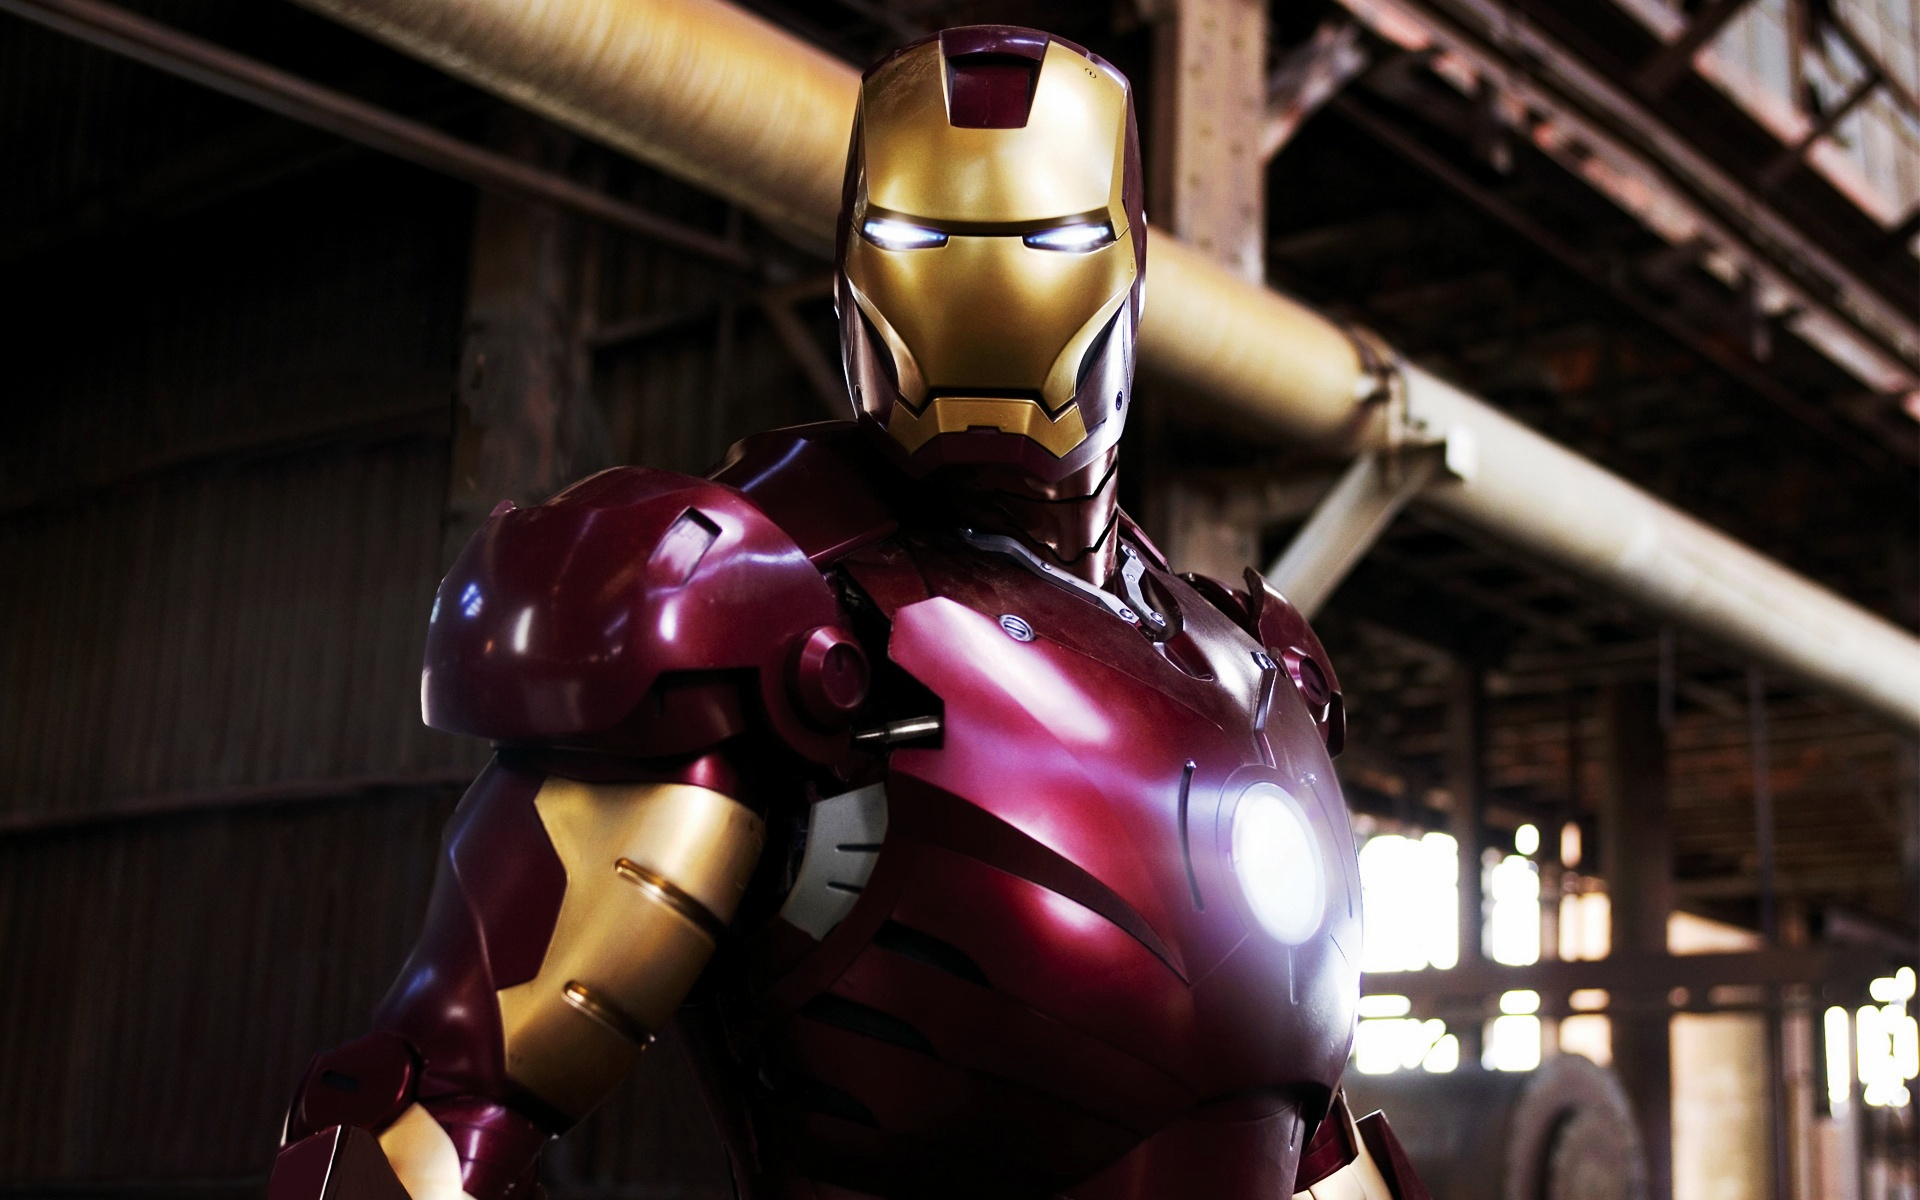 Iron Man Movie Still Wallpapers HD Wallpapers 1920x1200